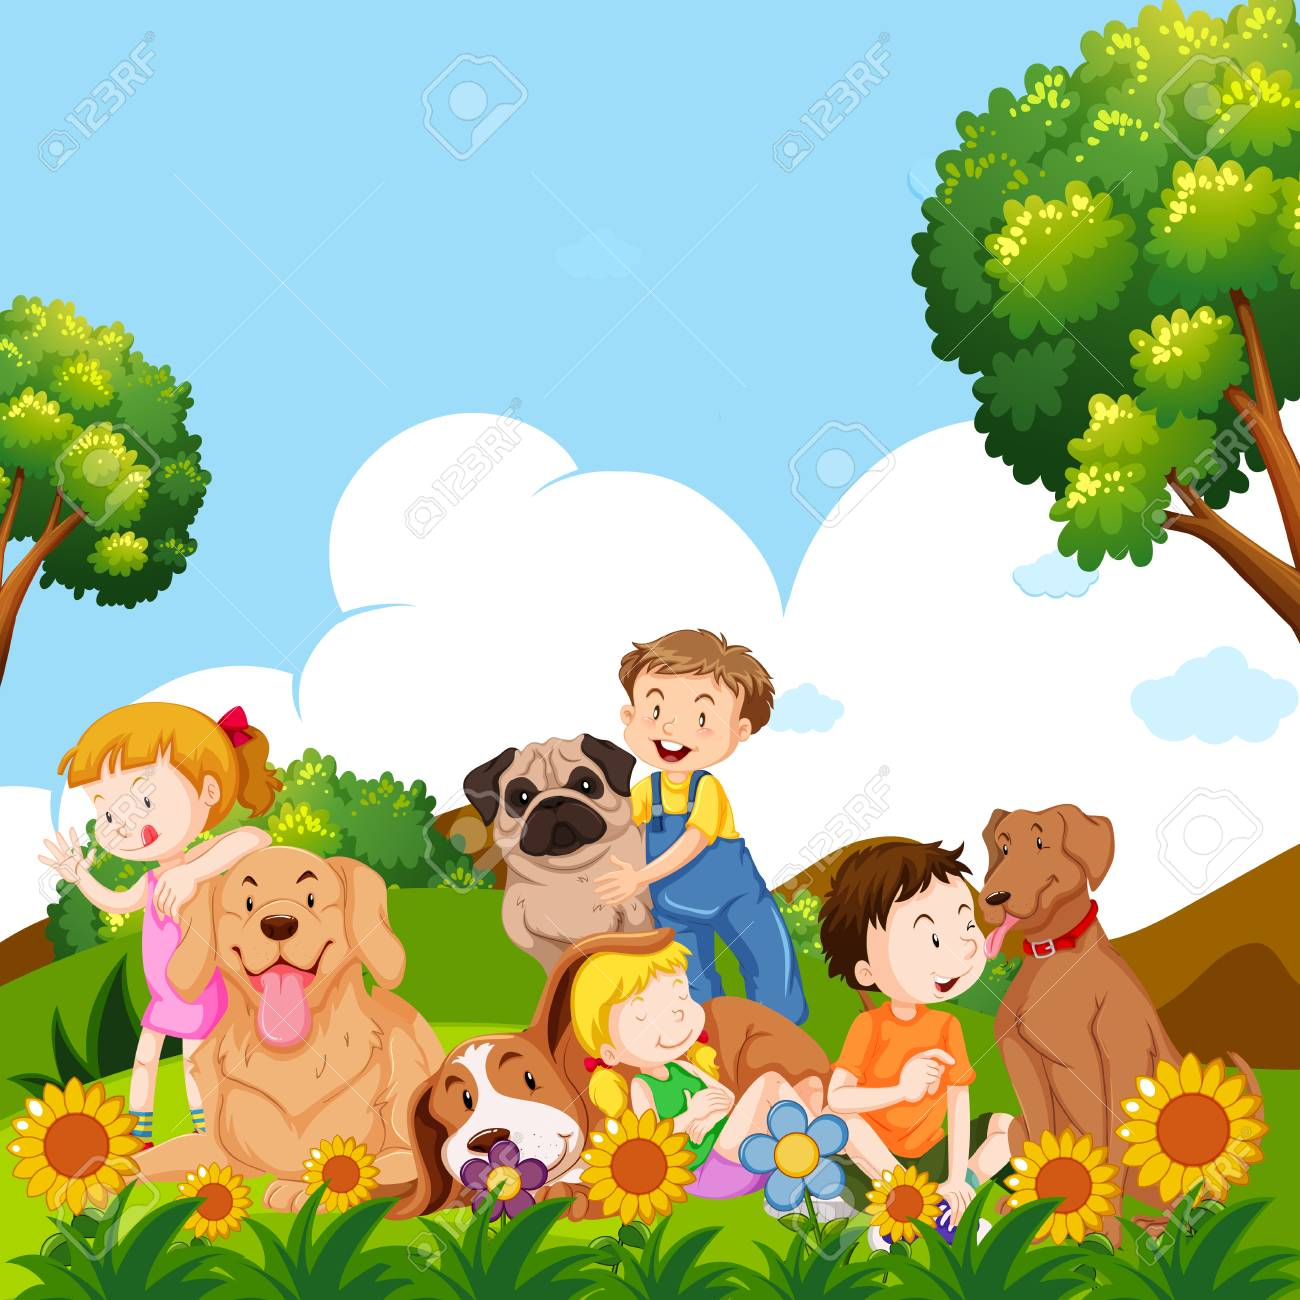 Children Playing In The Garden Royalty Free Cliparts, Vectors, And Stock  Illustration. Image 37631409.